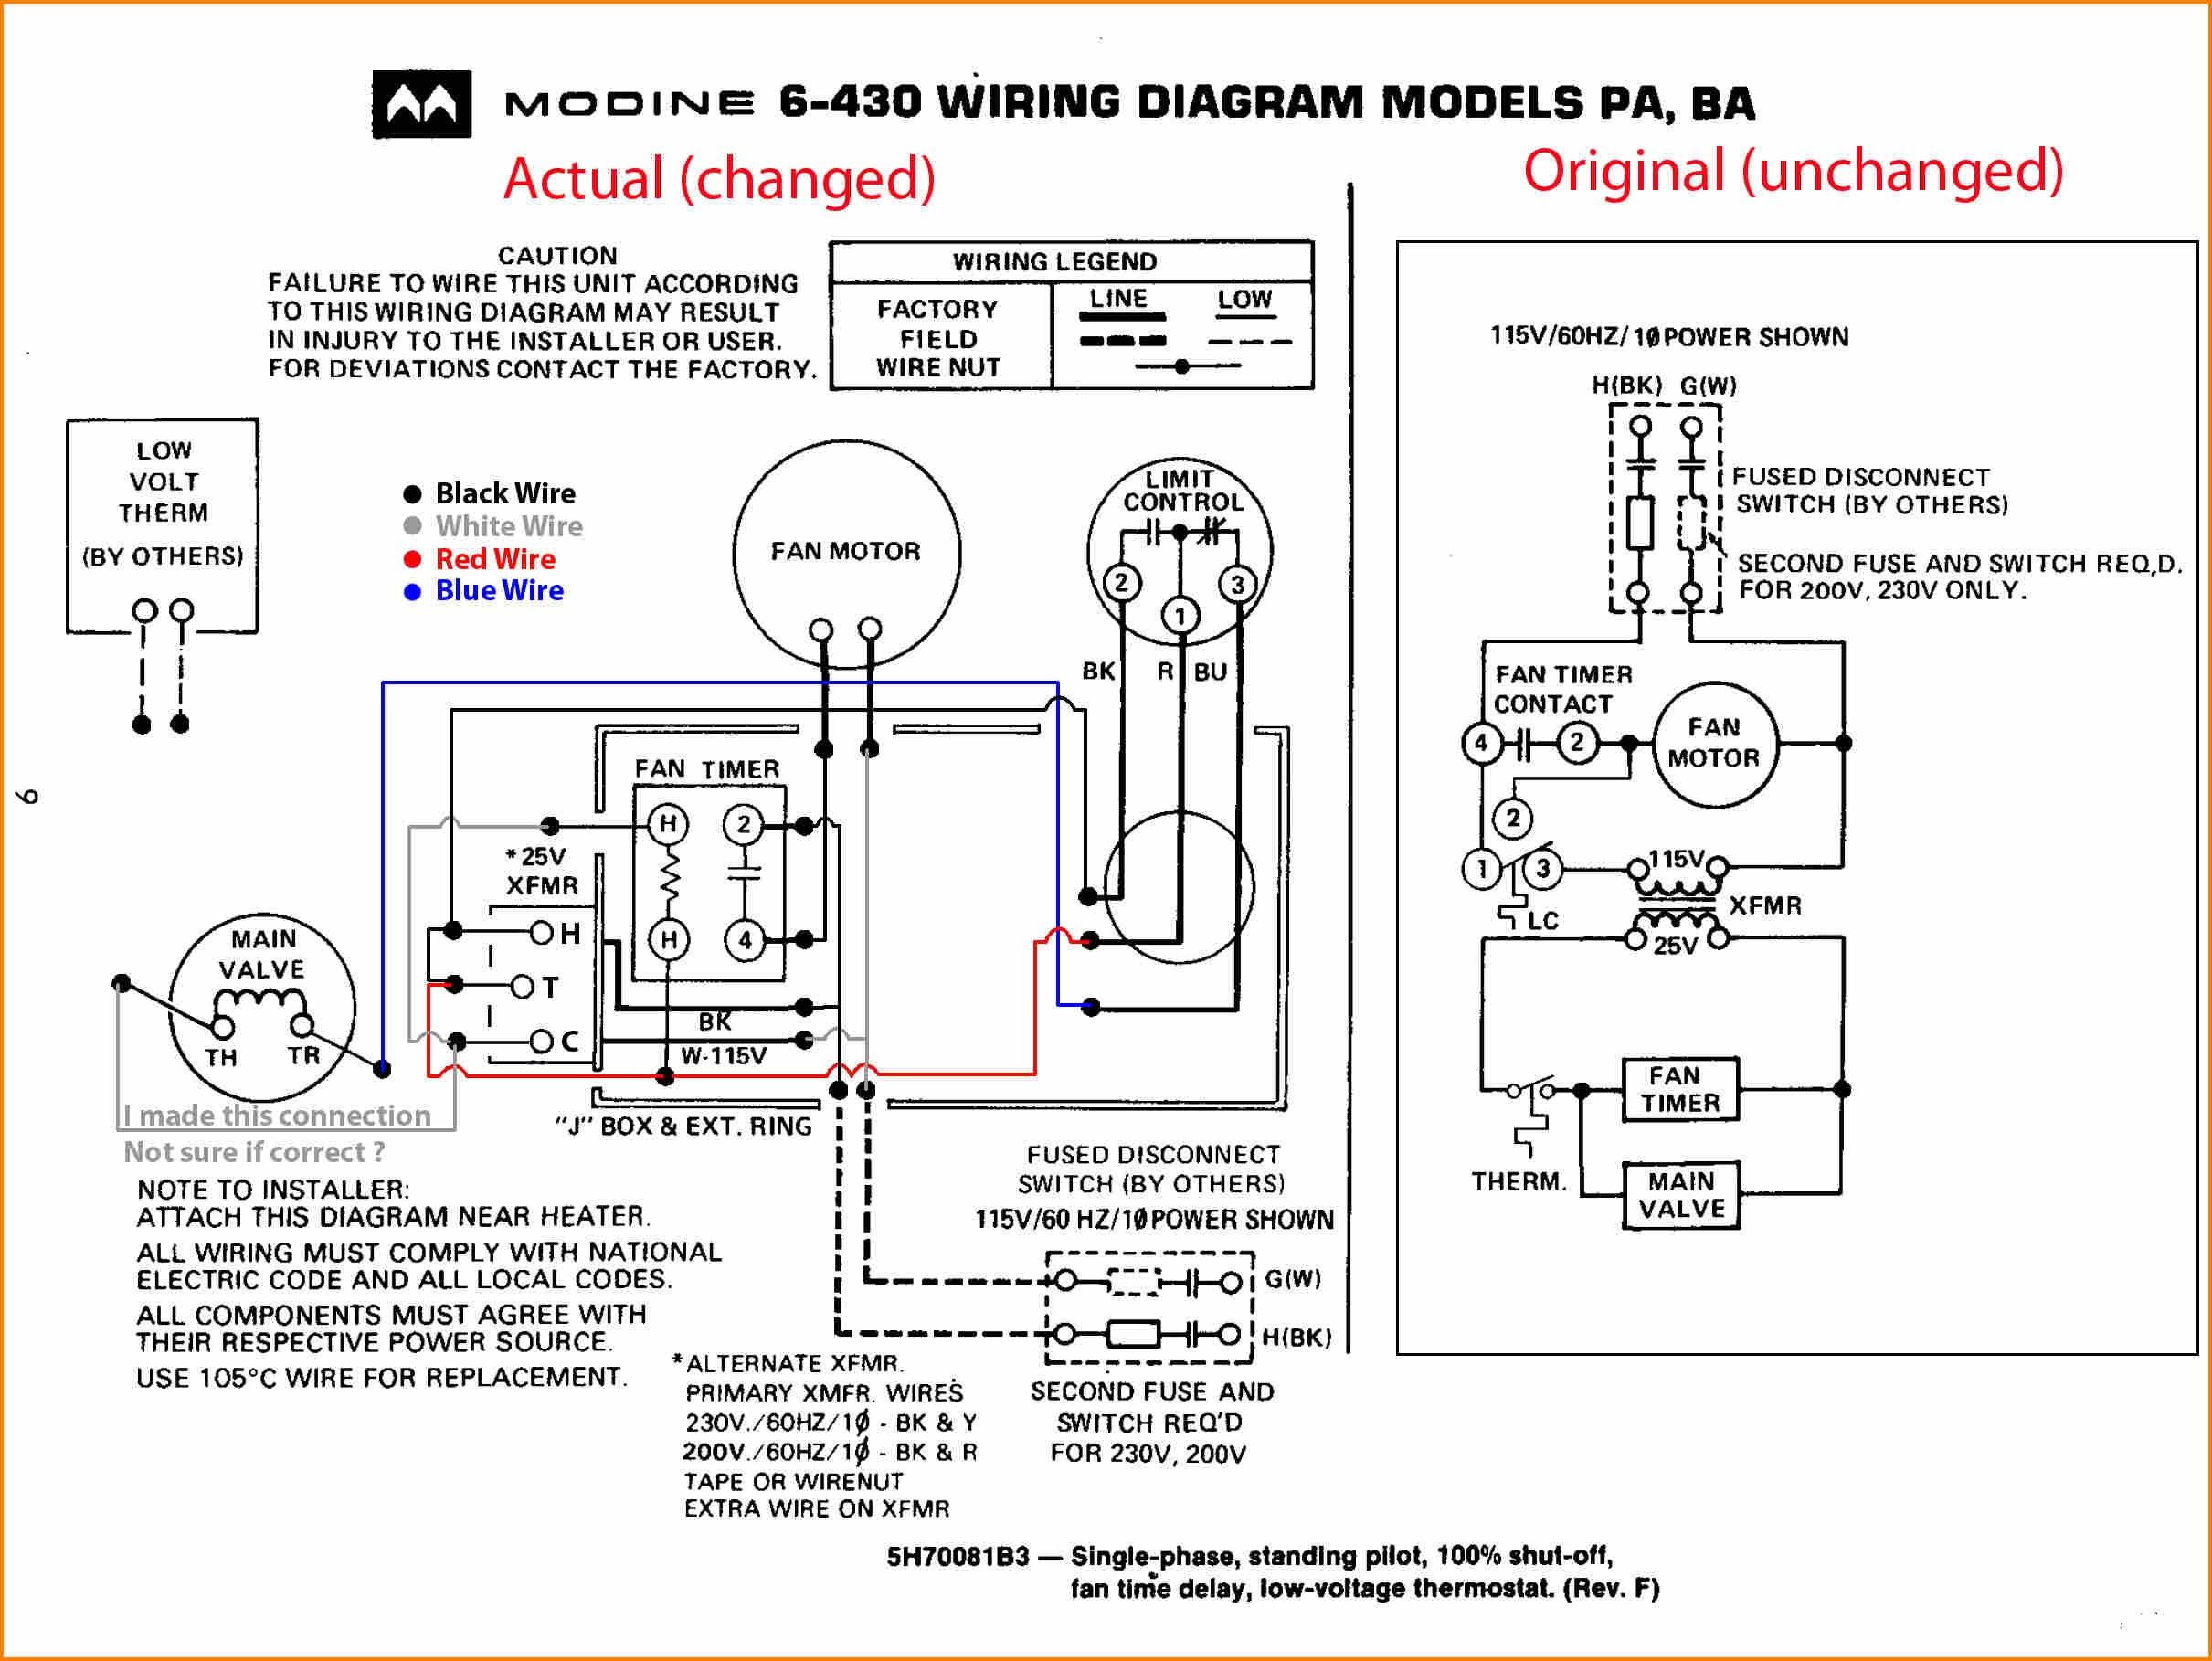 Unique Electric Furnace Blower Wiring Diagram Diagram Diagramsample Diagramtemplate Wiringdiag Thermostat Wiring Electrical Wiring Diagram Electric Furnace